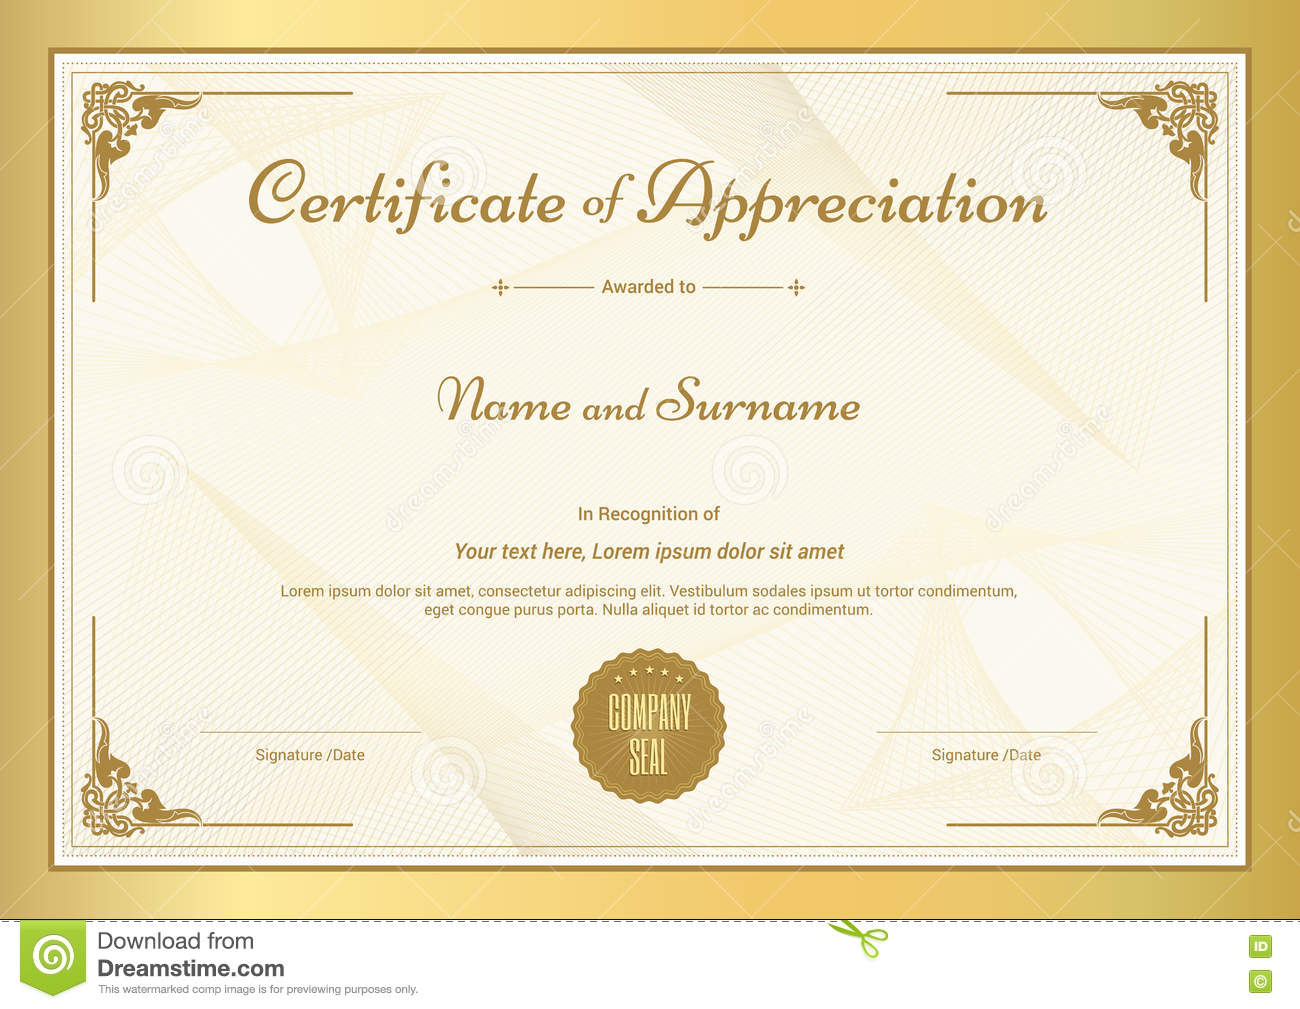 Certificate of appreciation template with gold border for Length of service certificate template